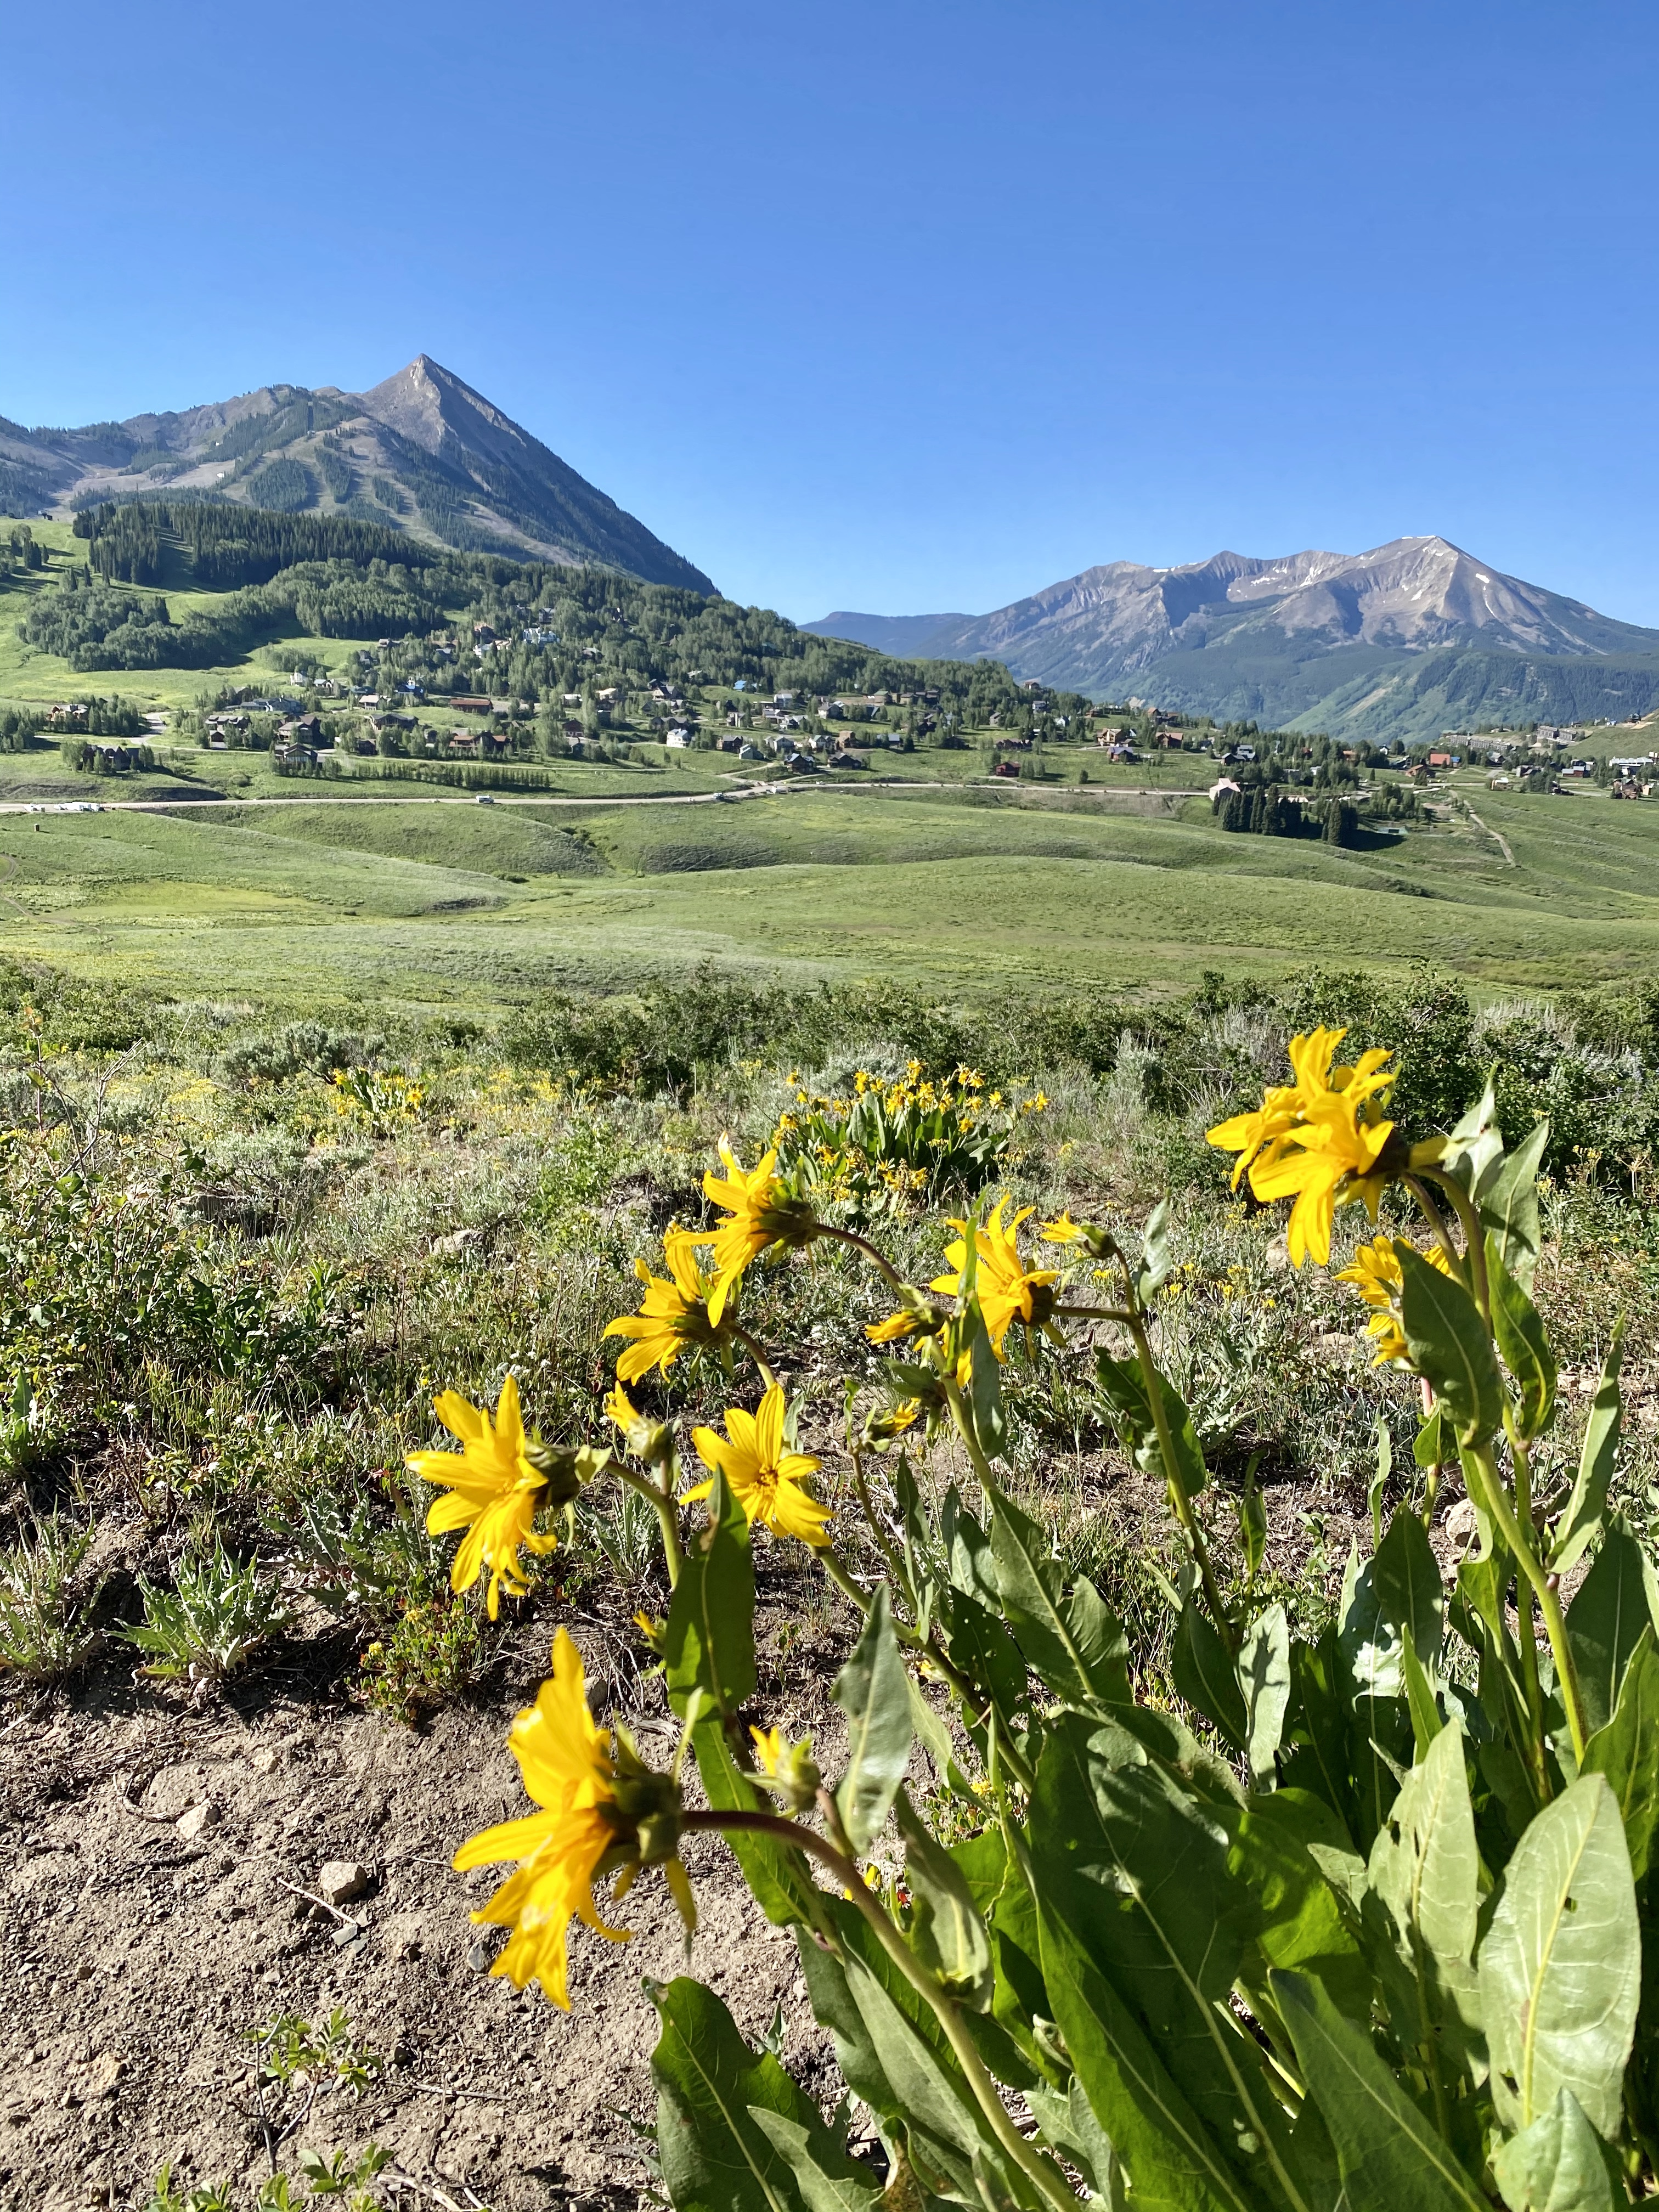 Colorado Road Trip during COVID-19, featuring 3 National Parks